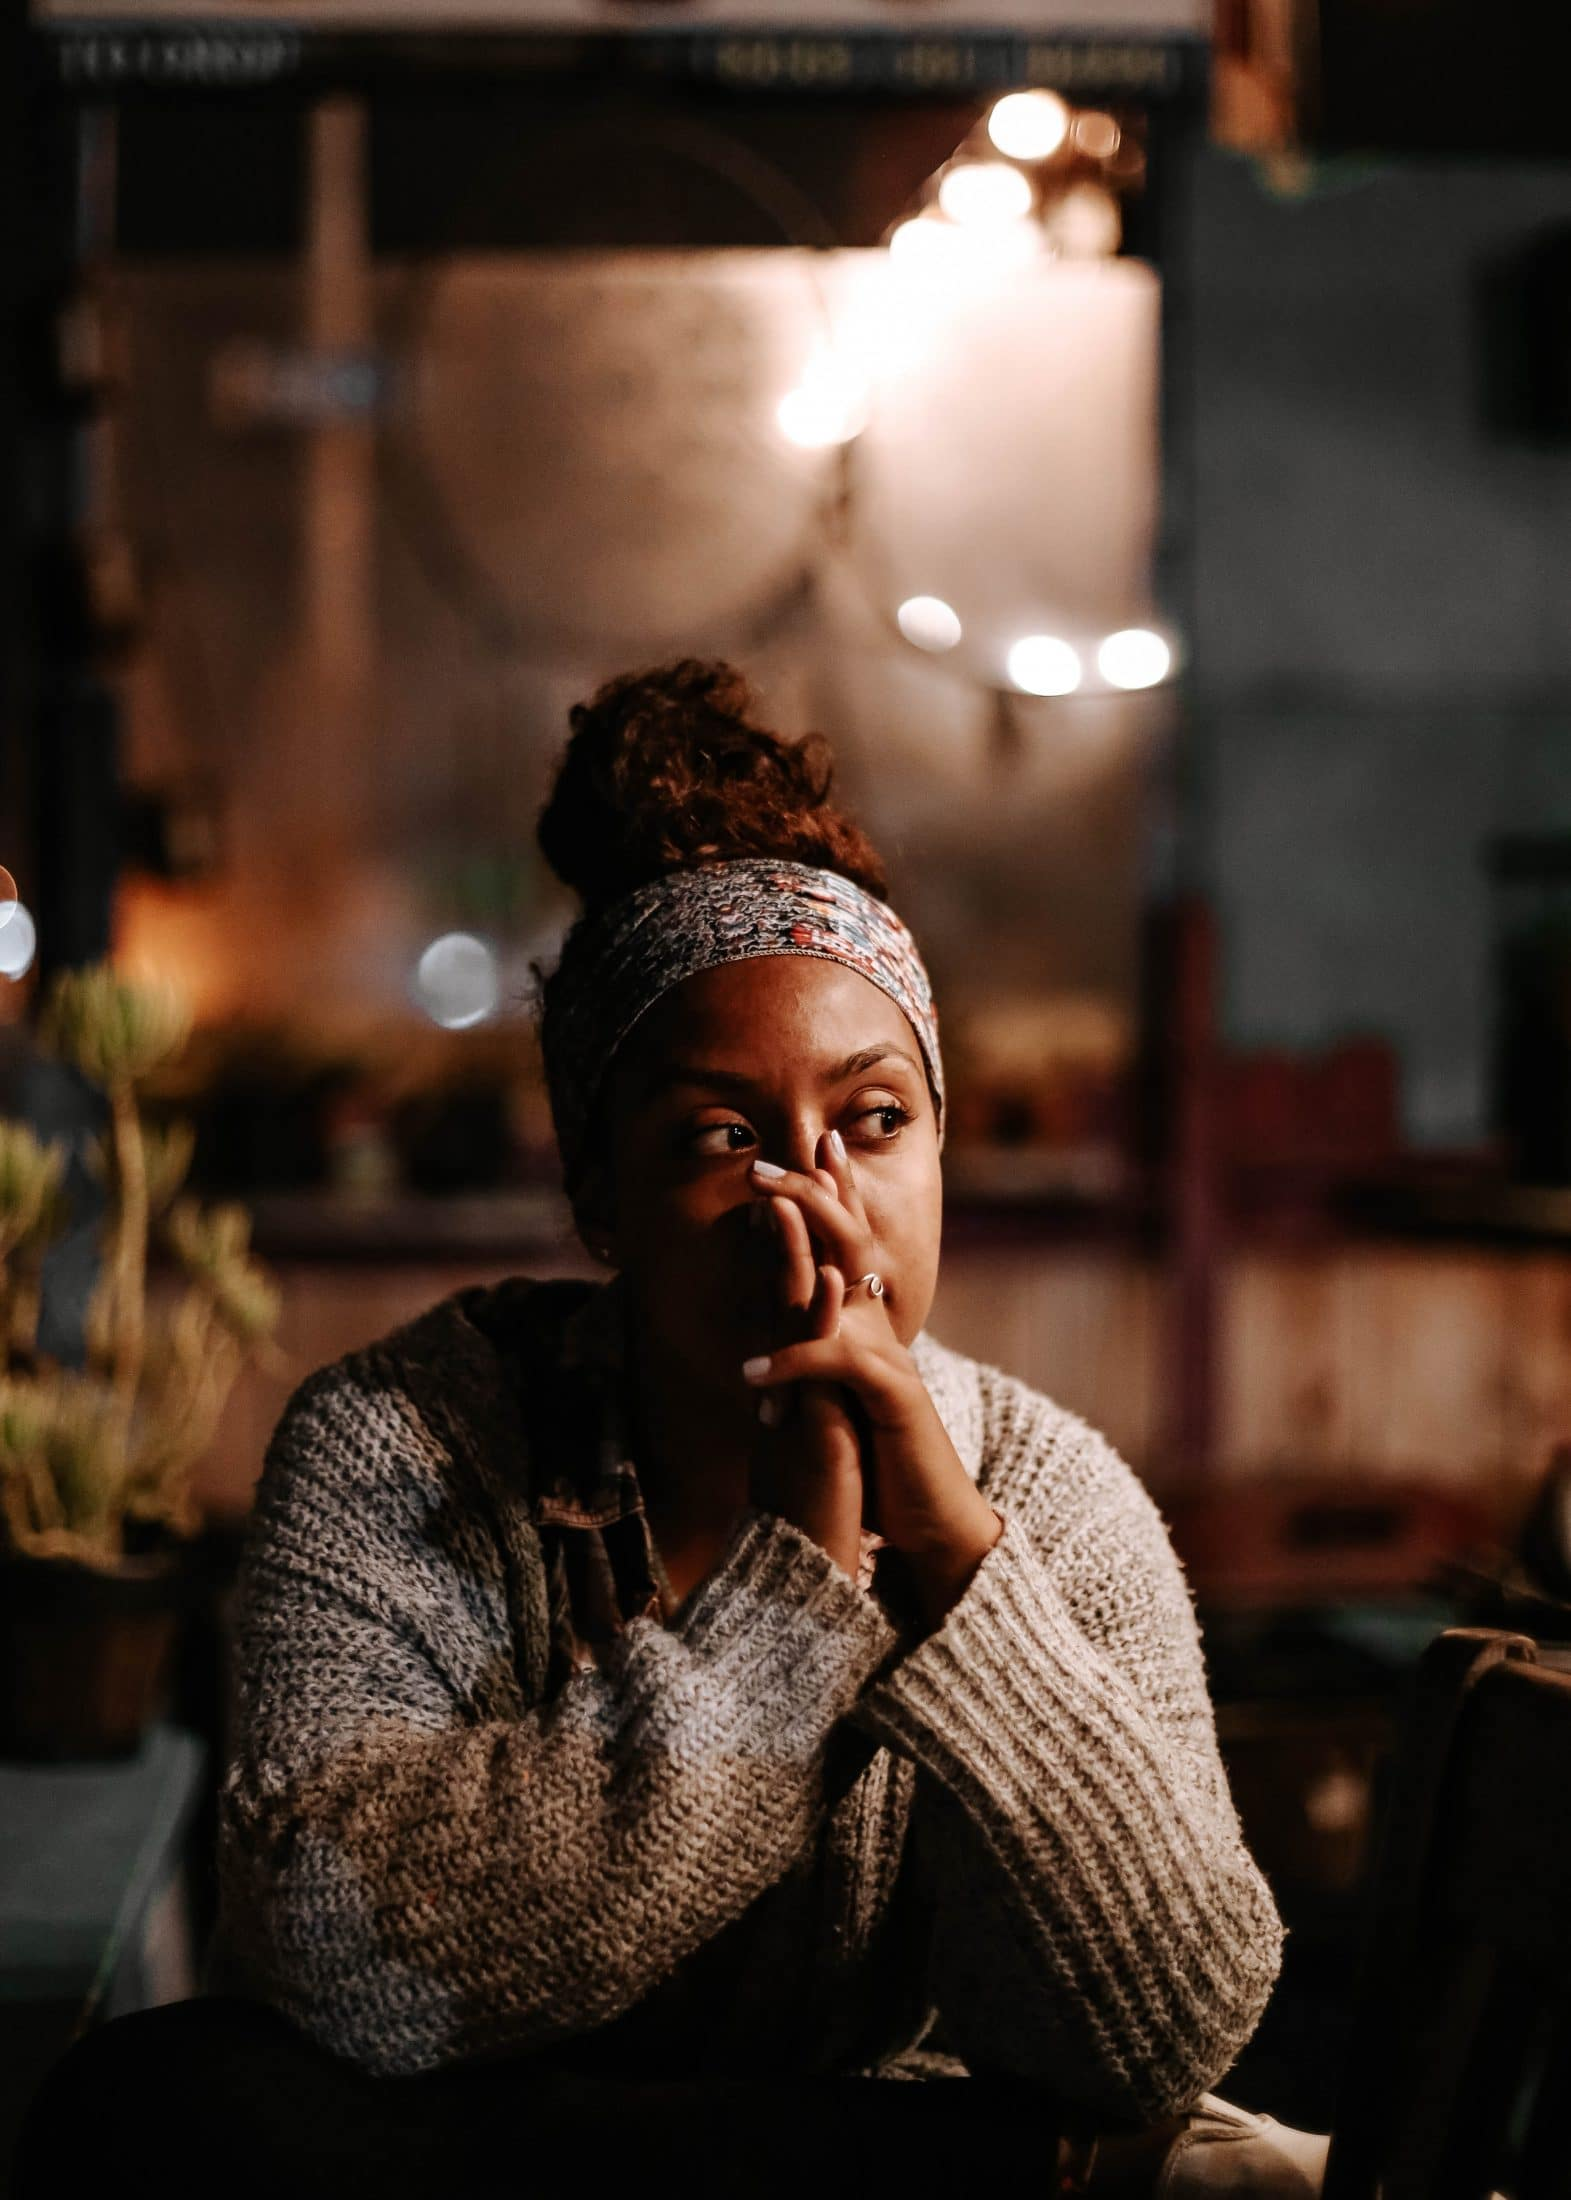 An overthinking black woman who looks stressed and anxious